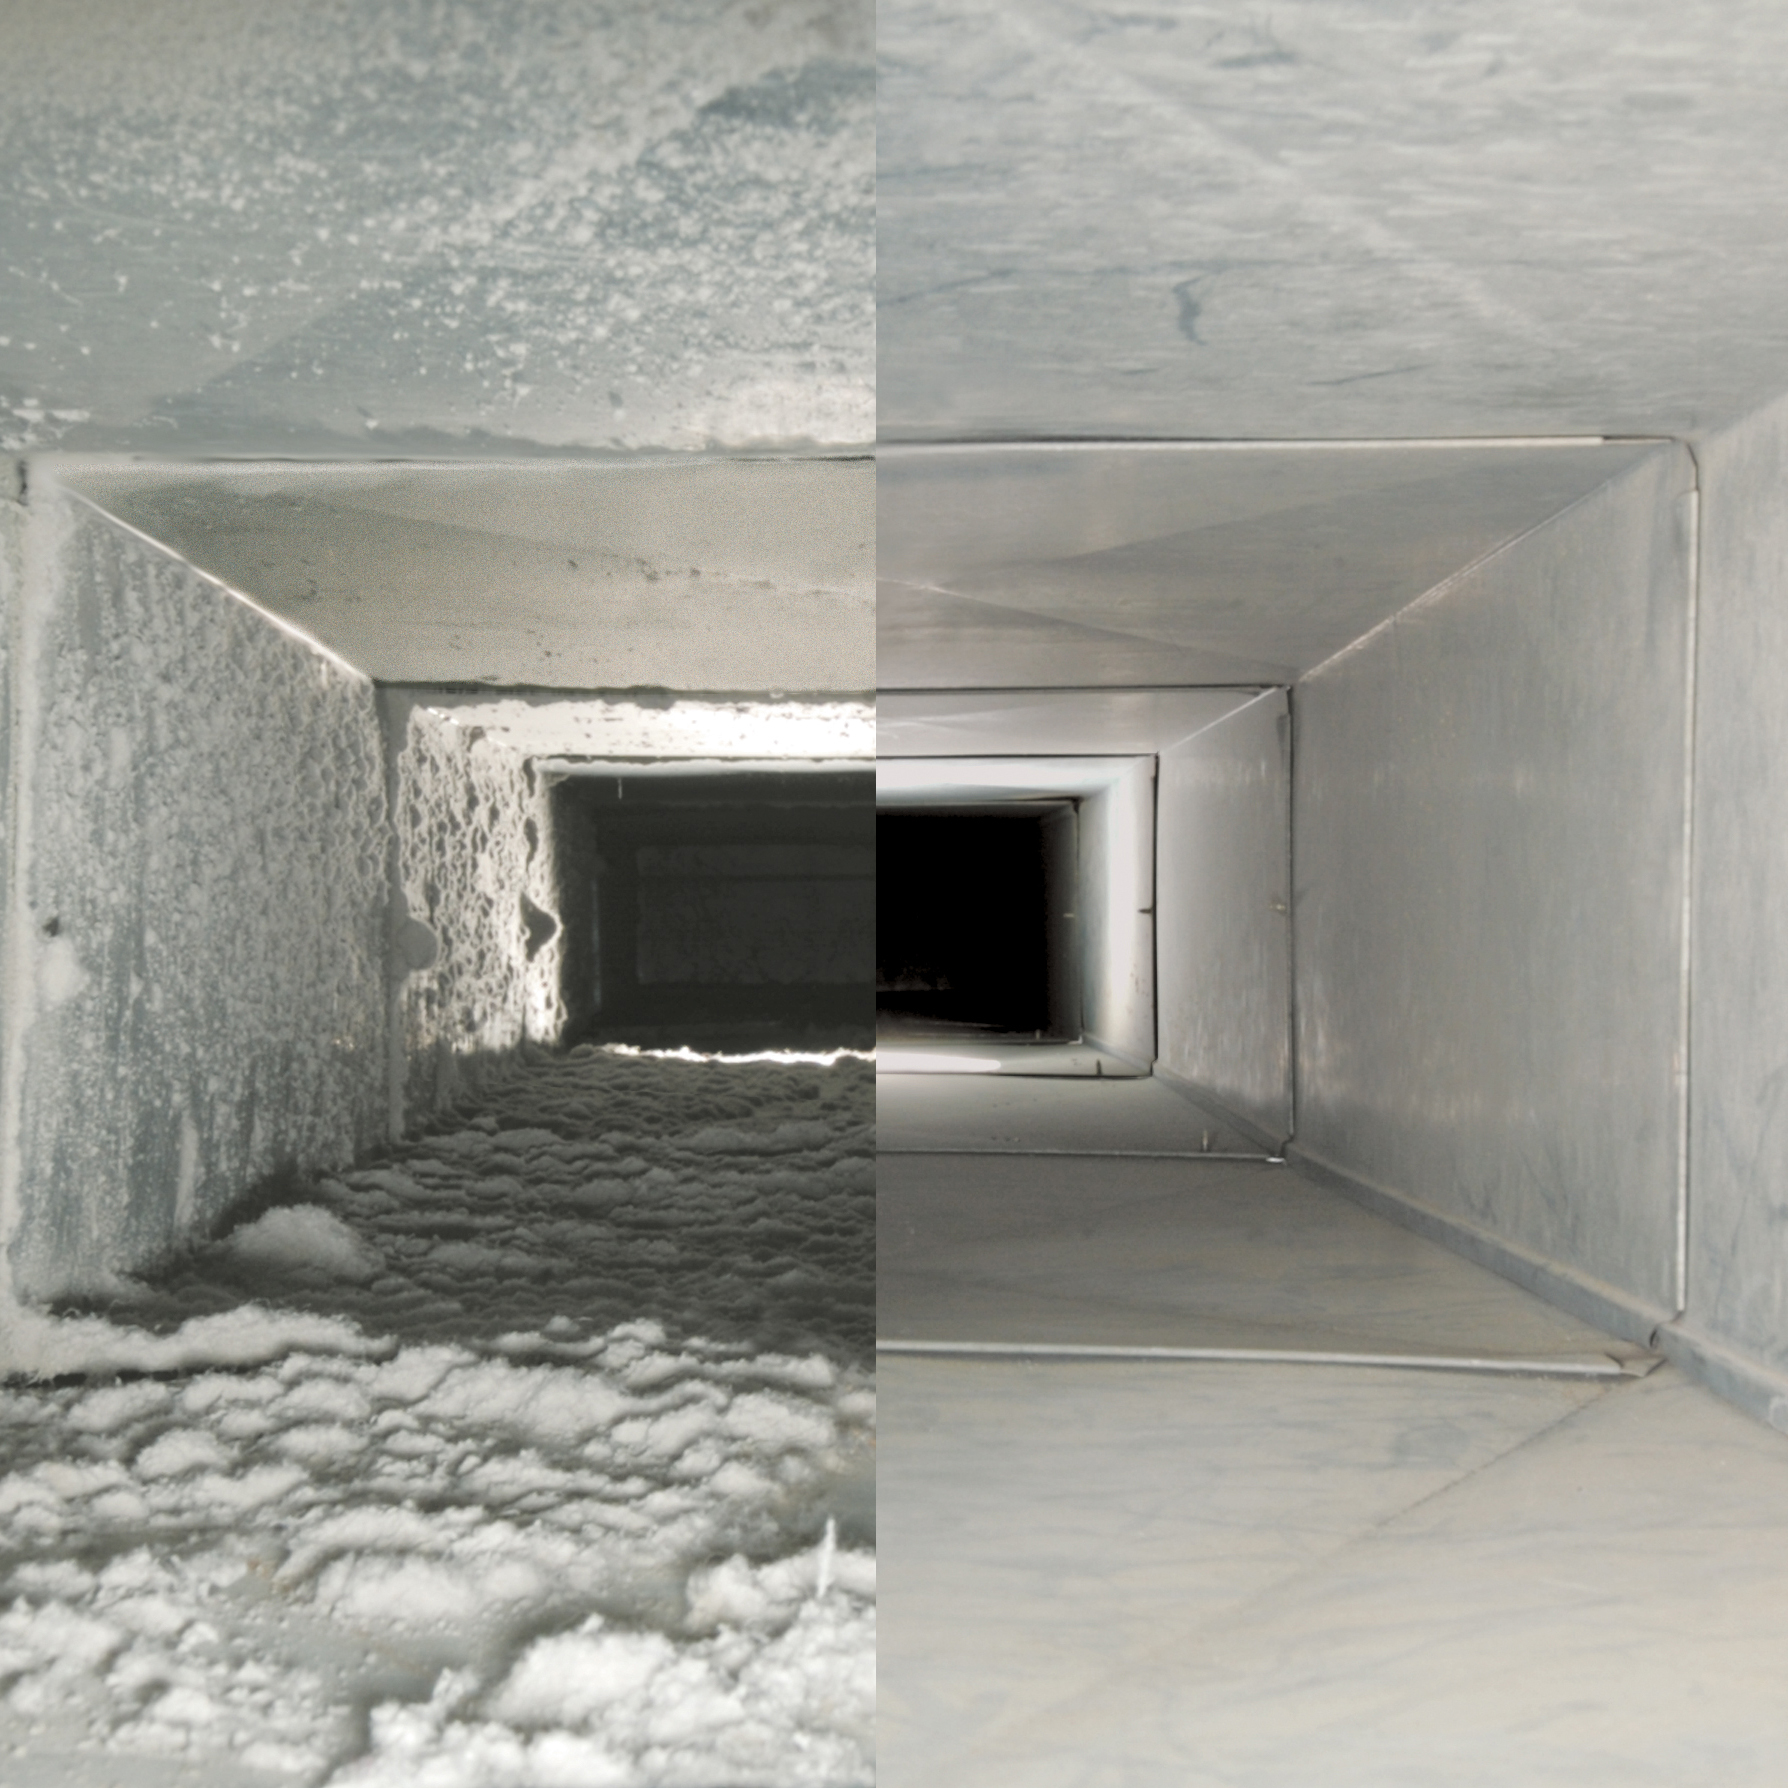 Dust is everywhere all the time. Regardless what type of HVAC air filter used, over time your ducts are likely to look like the left side of the above photo or worse. Every indoor air environment is different and subject to different factors contributing to the the dust and debris that builds up within the ductwork. In certain instances mold can impact the ductwork as well as the system itself. We specialize in duct cleaning, sanitization and remediation.